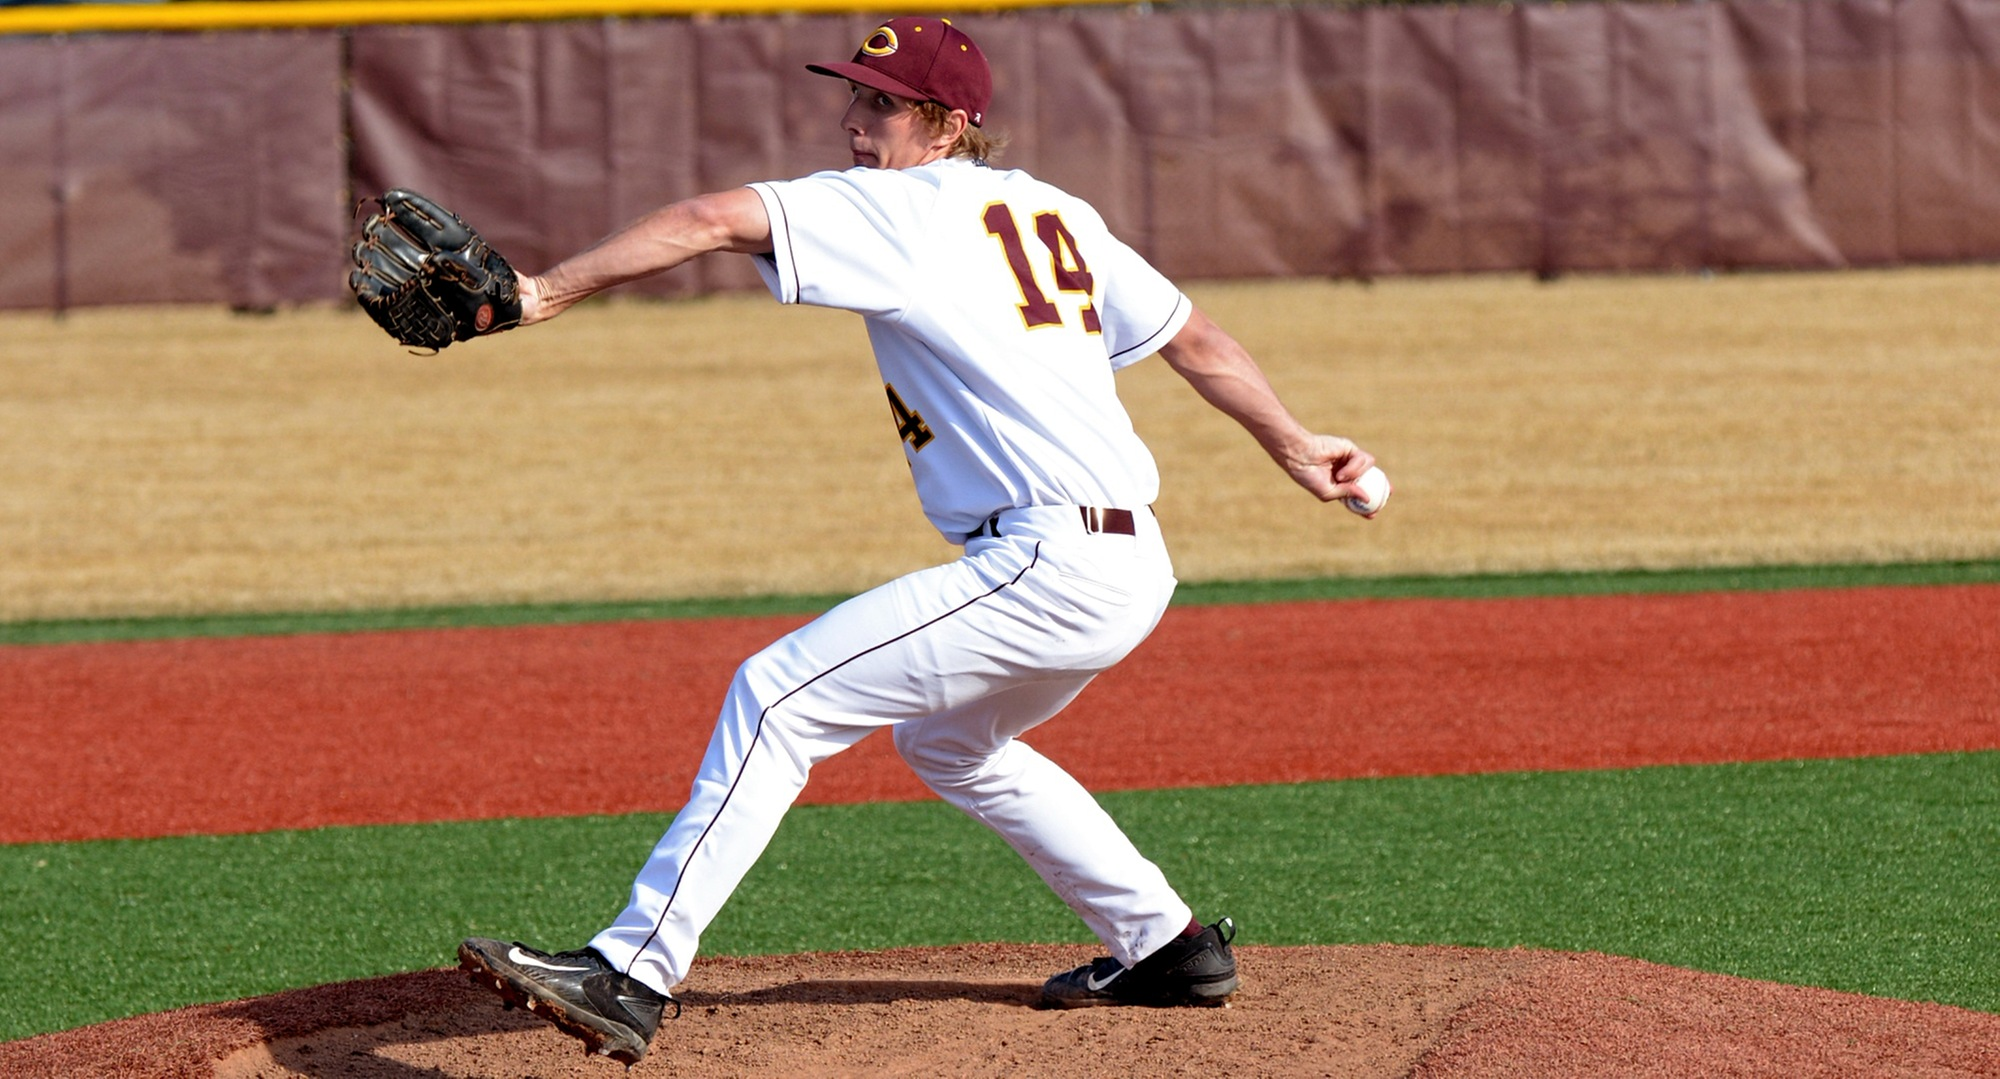 Freshman Austin Ver Steeg allowed only two hits and pitched a complete-game shutout to help the Cobbers sweep Gustavus.